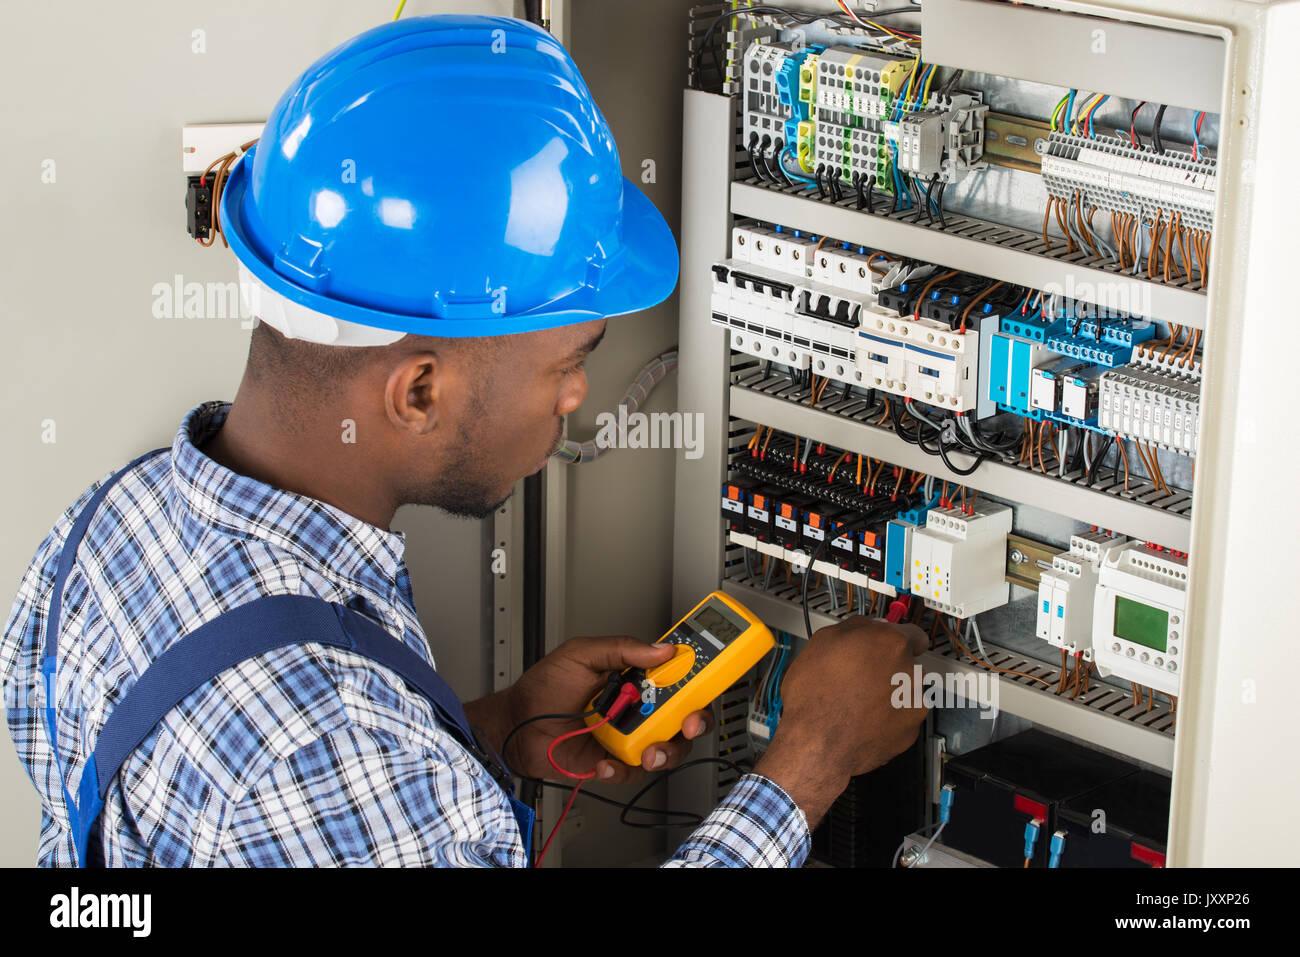 Young African Male Technician Examining Fusebox With Multimeter Probe - Stock Image